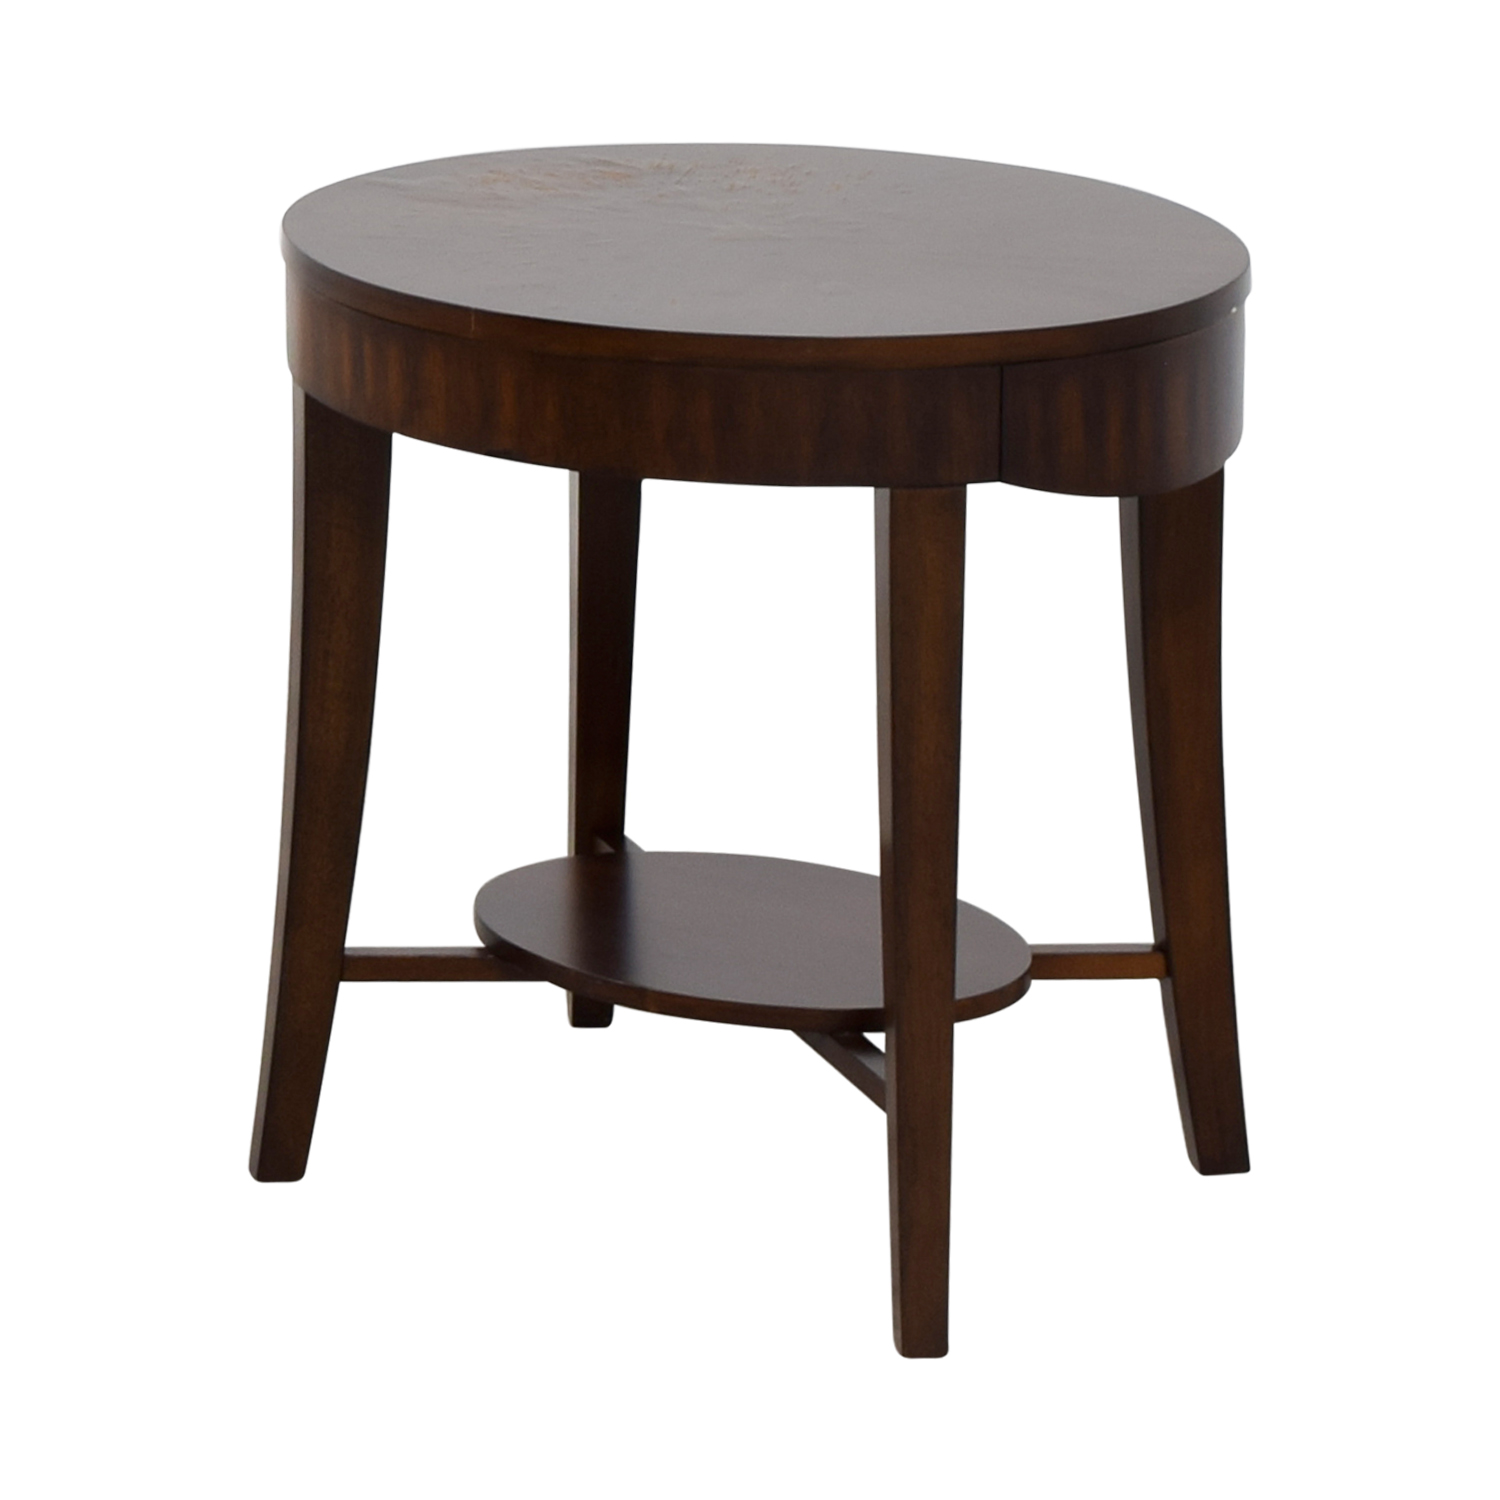 Raymour and Flannigan Raymour and Flanigan Round Side Table dimensions